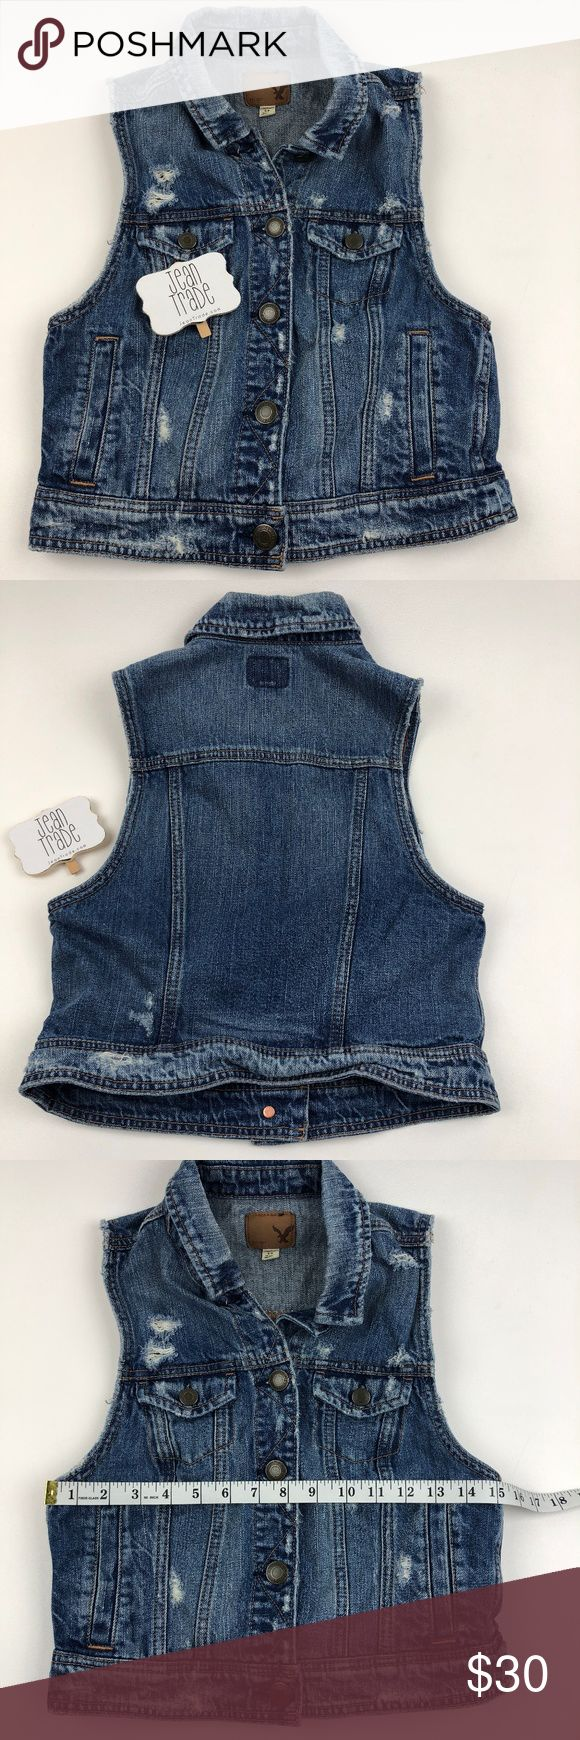 AE American Eagle Denim Vest AE American Eagle Denim Vest. Sleeveless Jean Vest. See photos for measurements. GC  Washed cotton denim Collar neck with full button front Dual chest pockets with button closure Sleeveless Dual hip pockets American Eagle Outfitters Jackets & Coats Vests